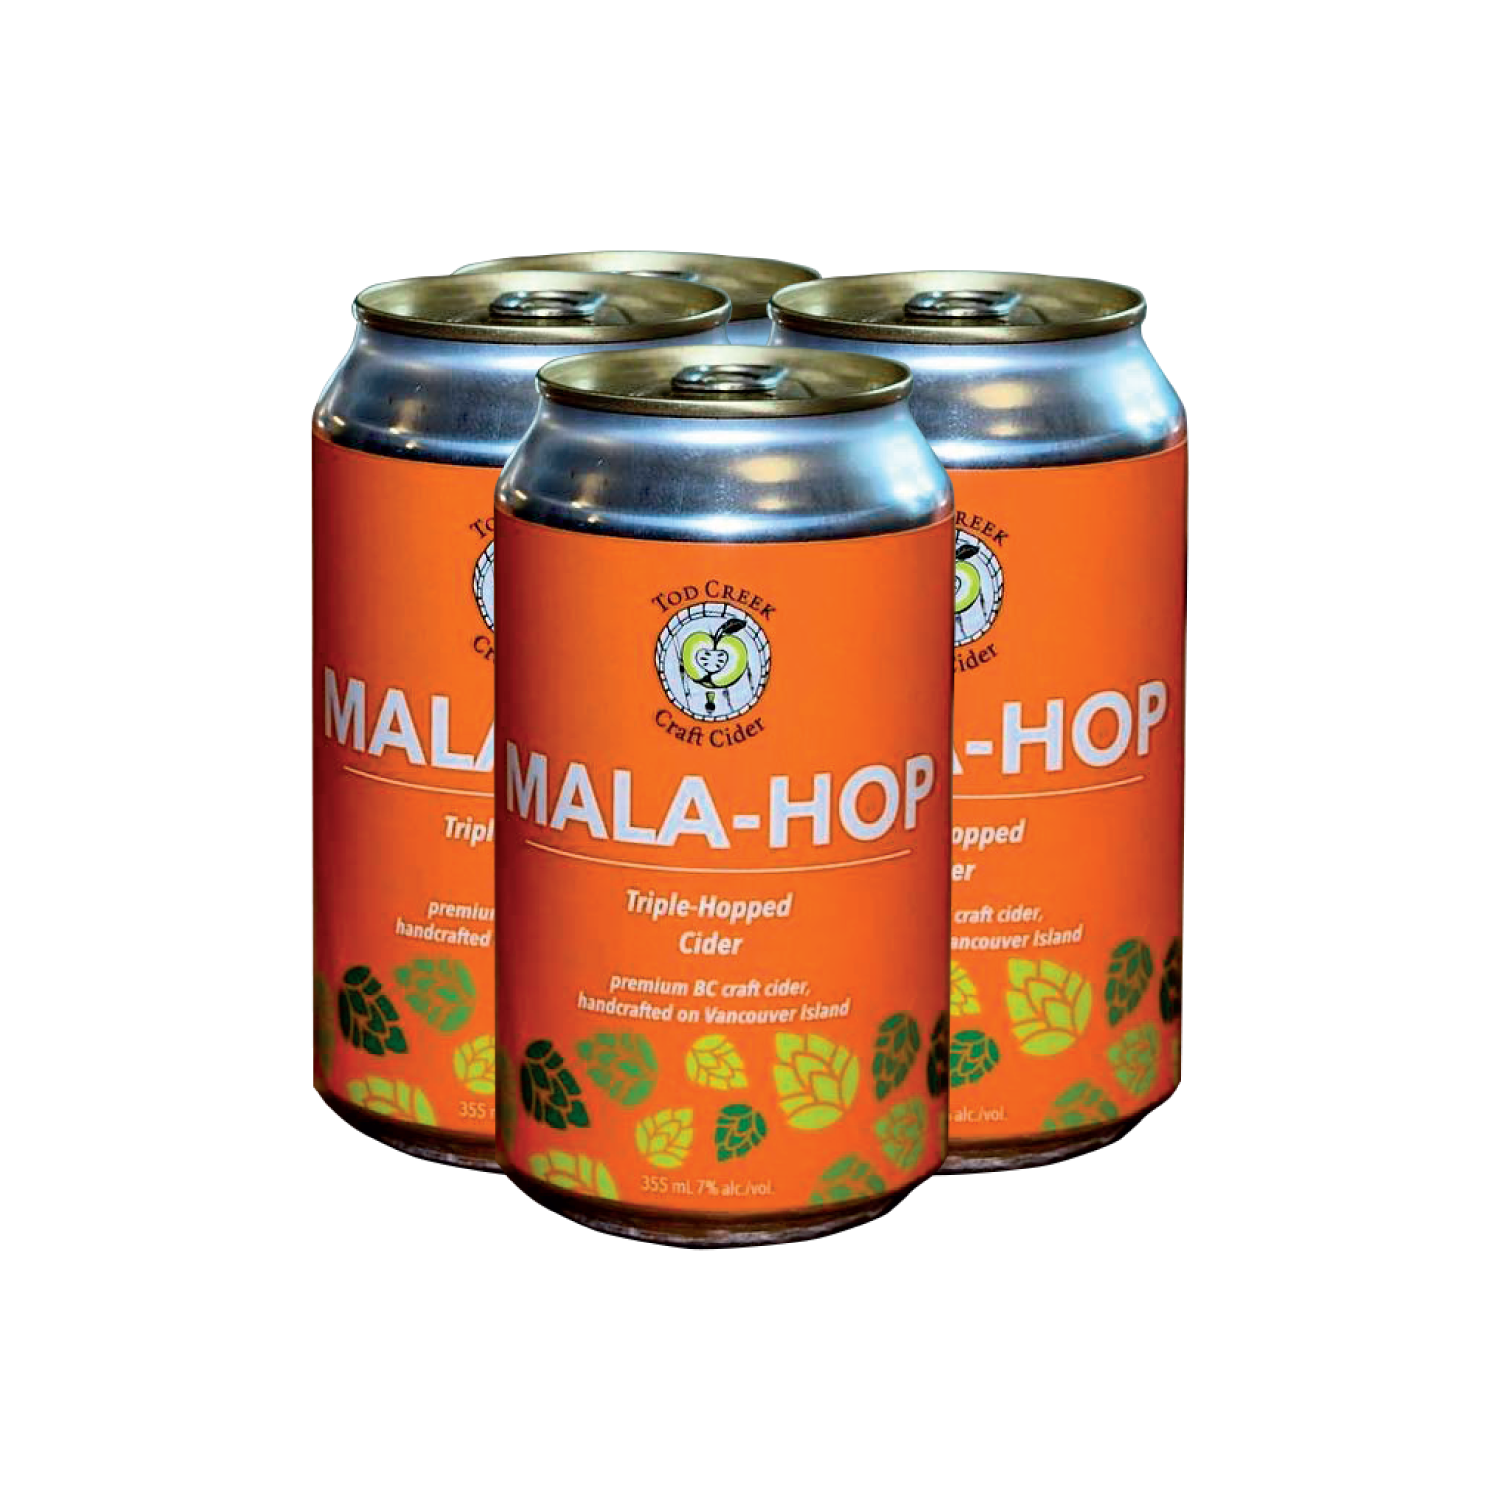 Tod Creek Mala-hop - Now available in can, this local favourite is designed for the beach. Dry with a refreshing hoppiness.$15.49 (4x355 ml)Victoria, BC